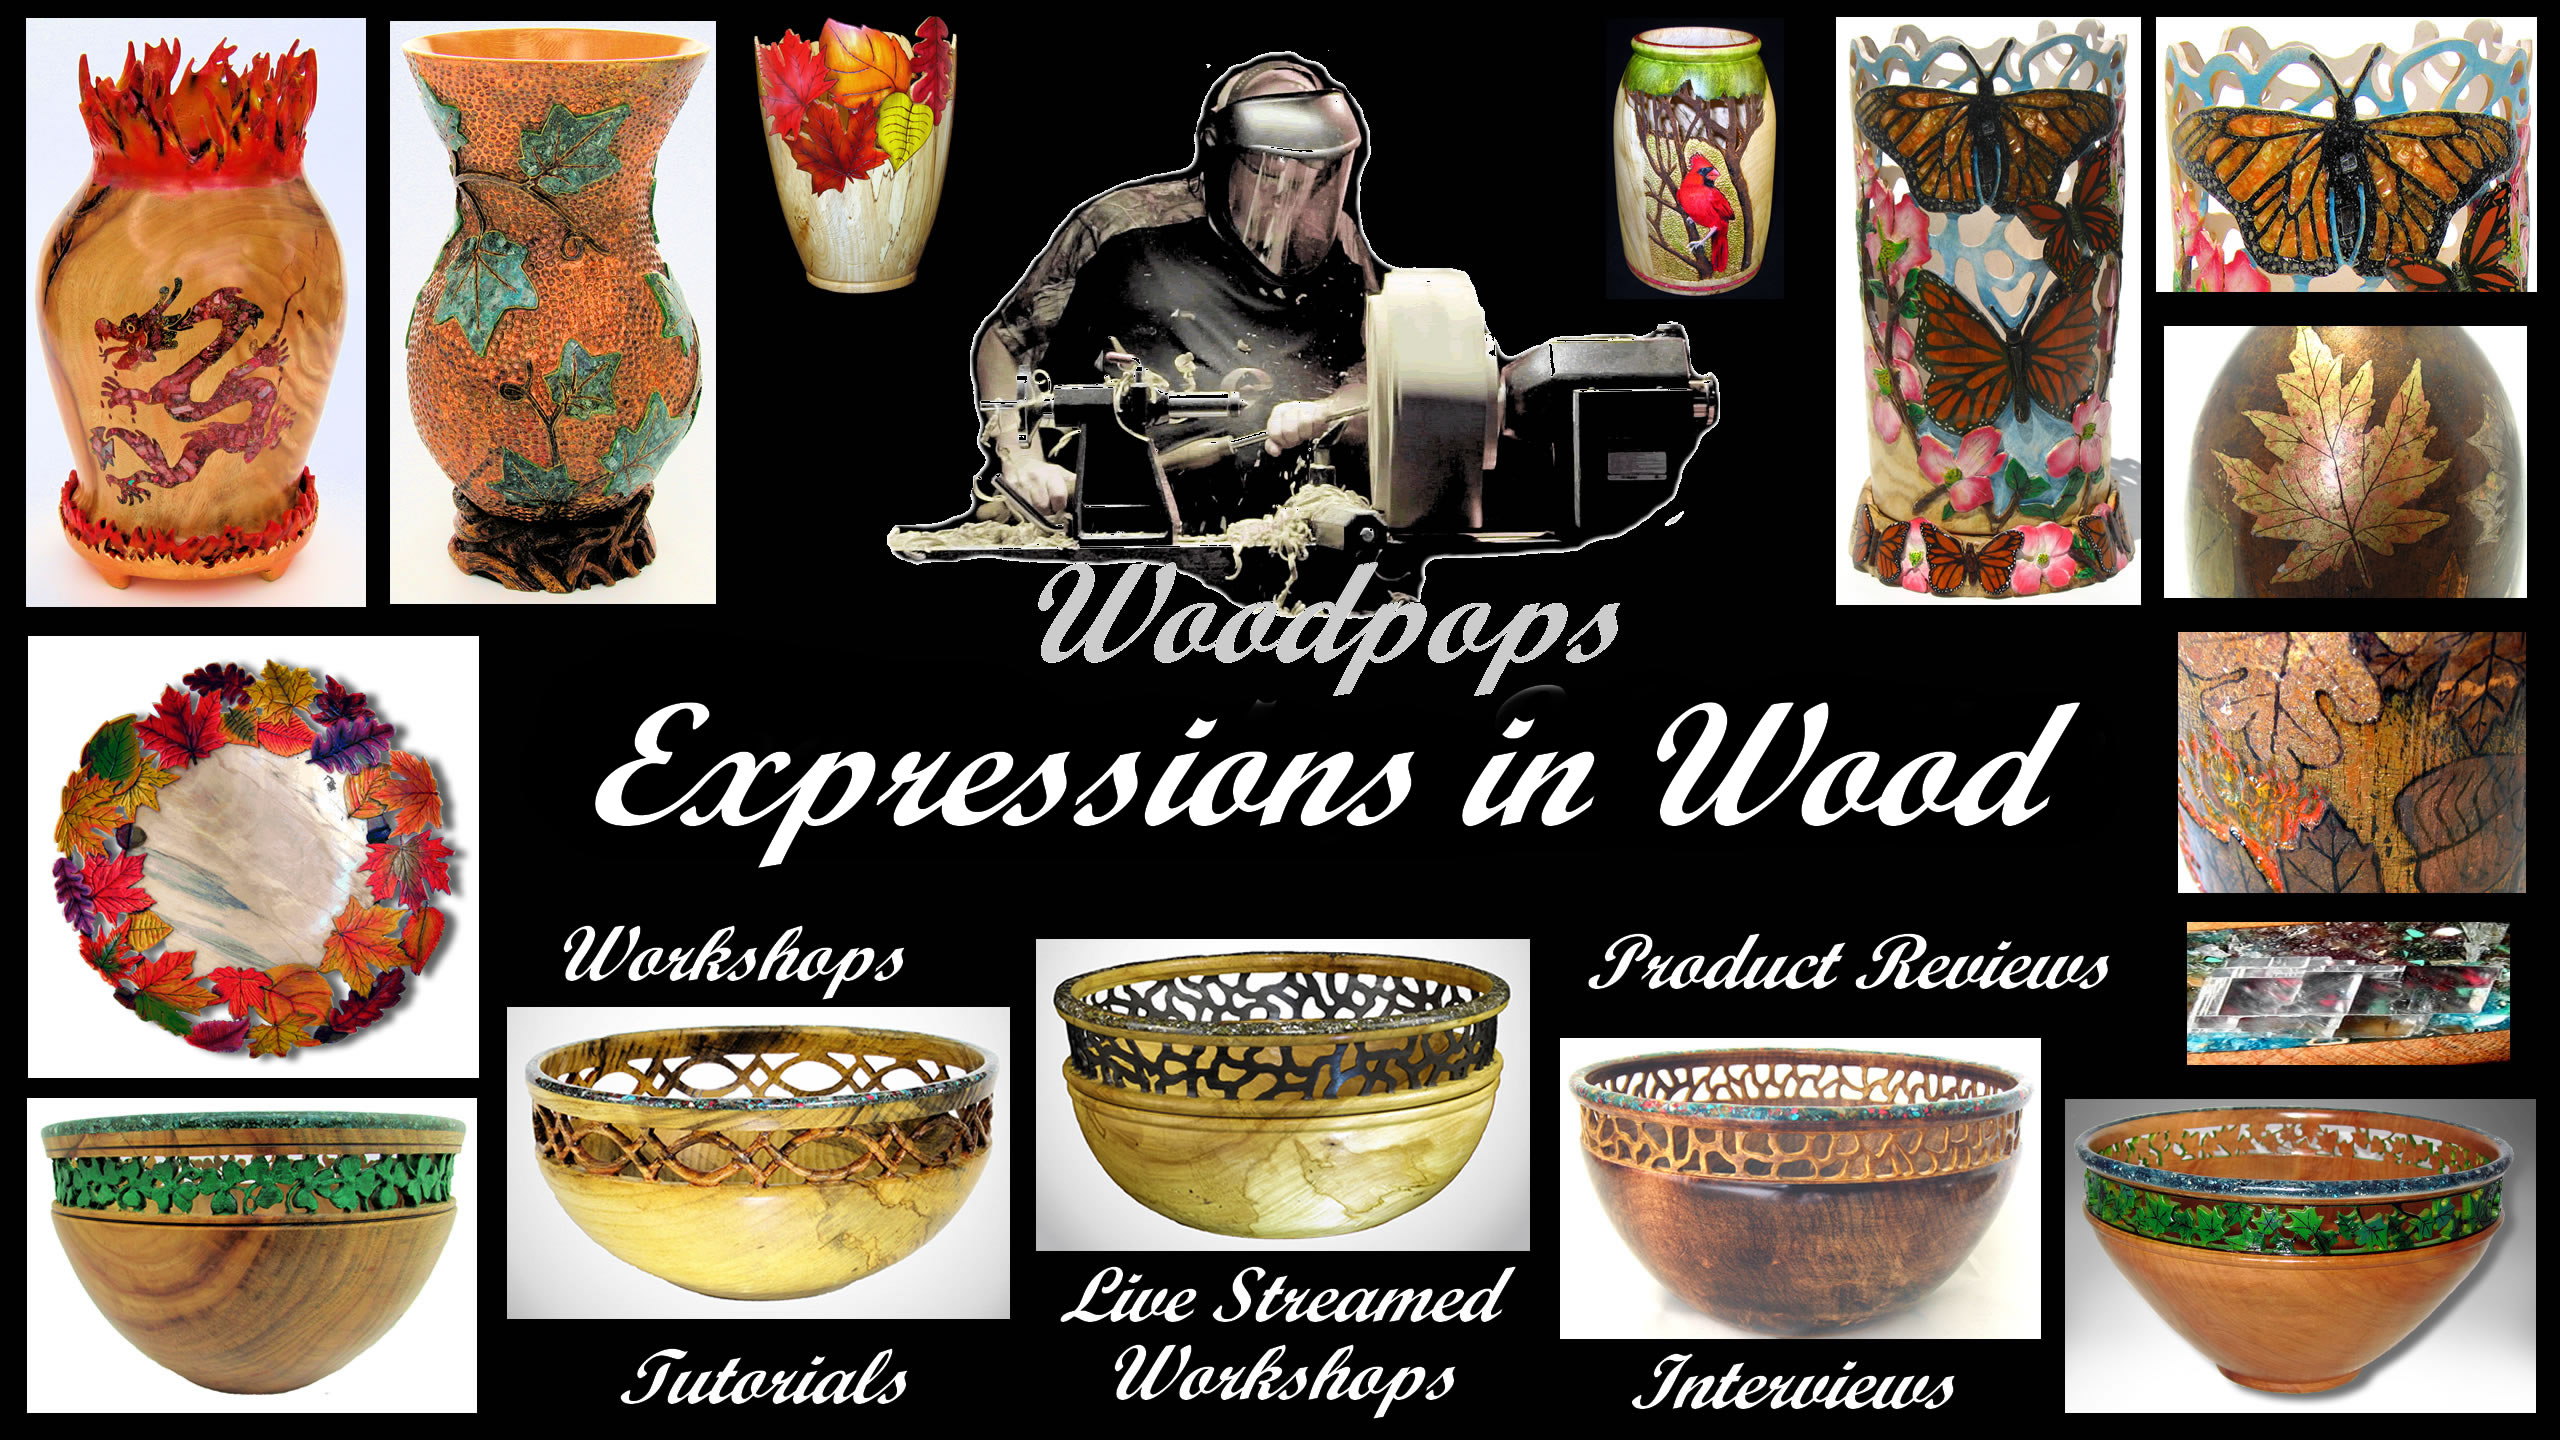 woodturning videos this month Woodpops Woodturning Expressions In Wood